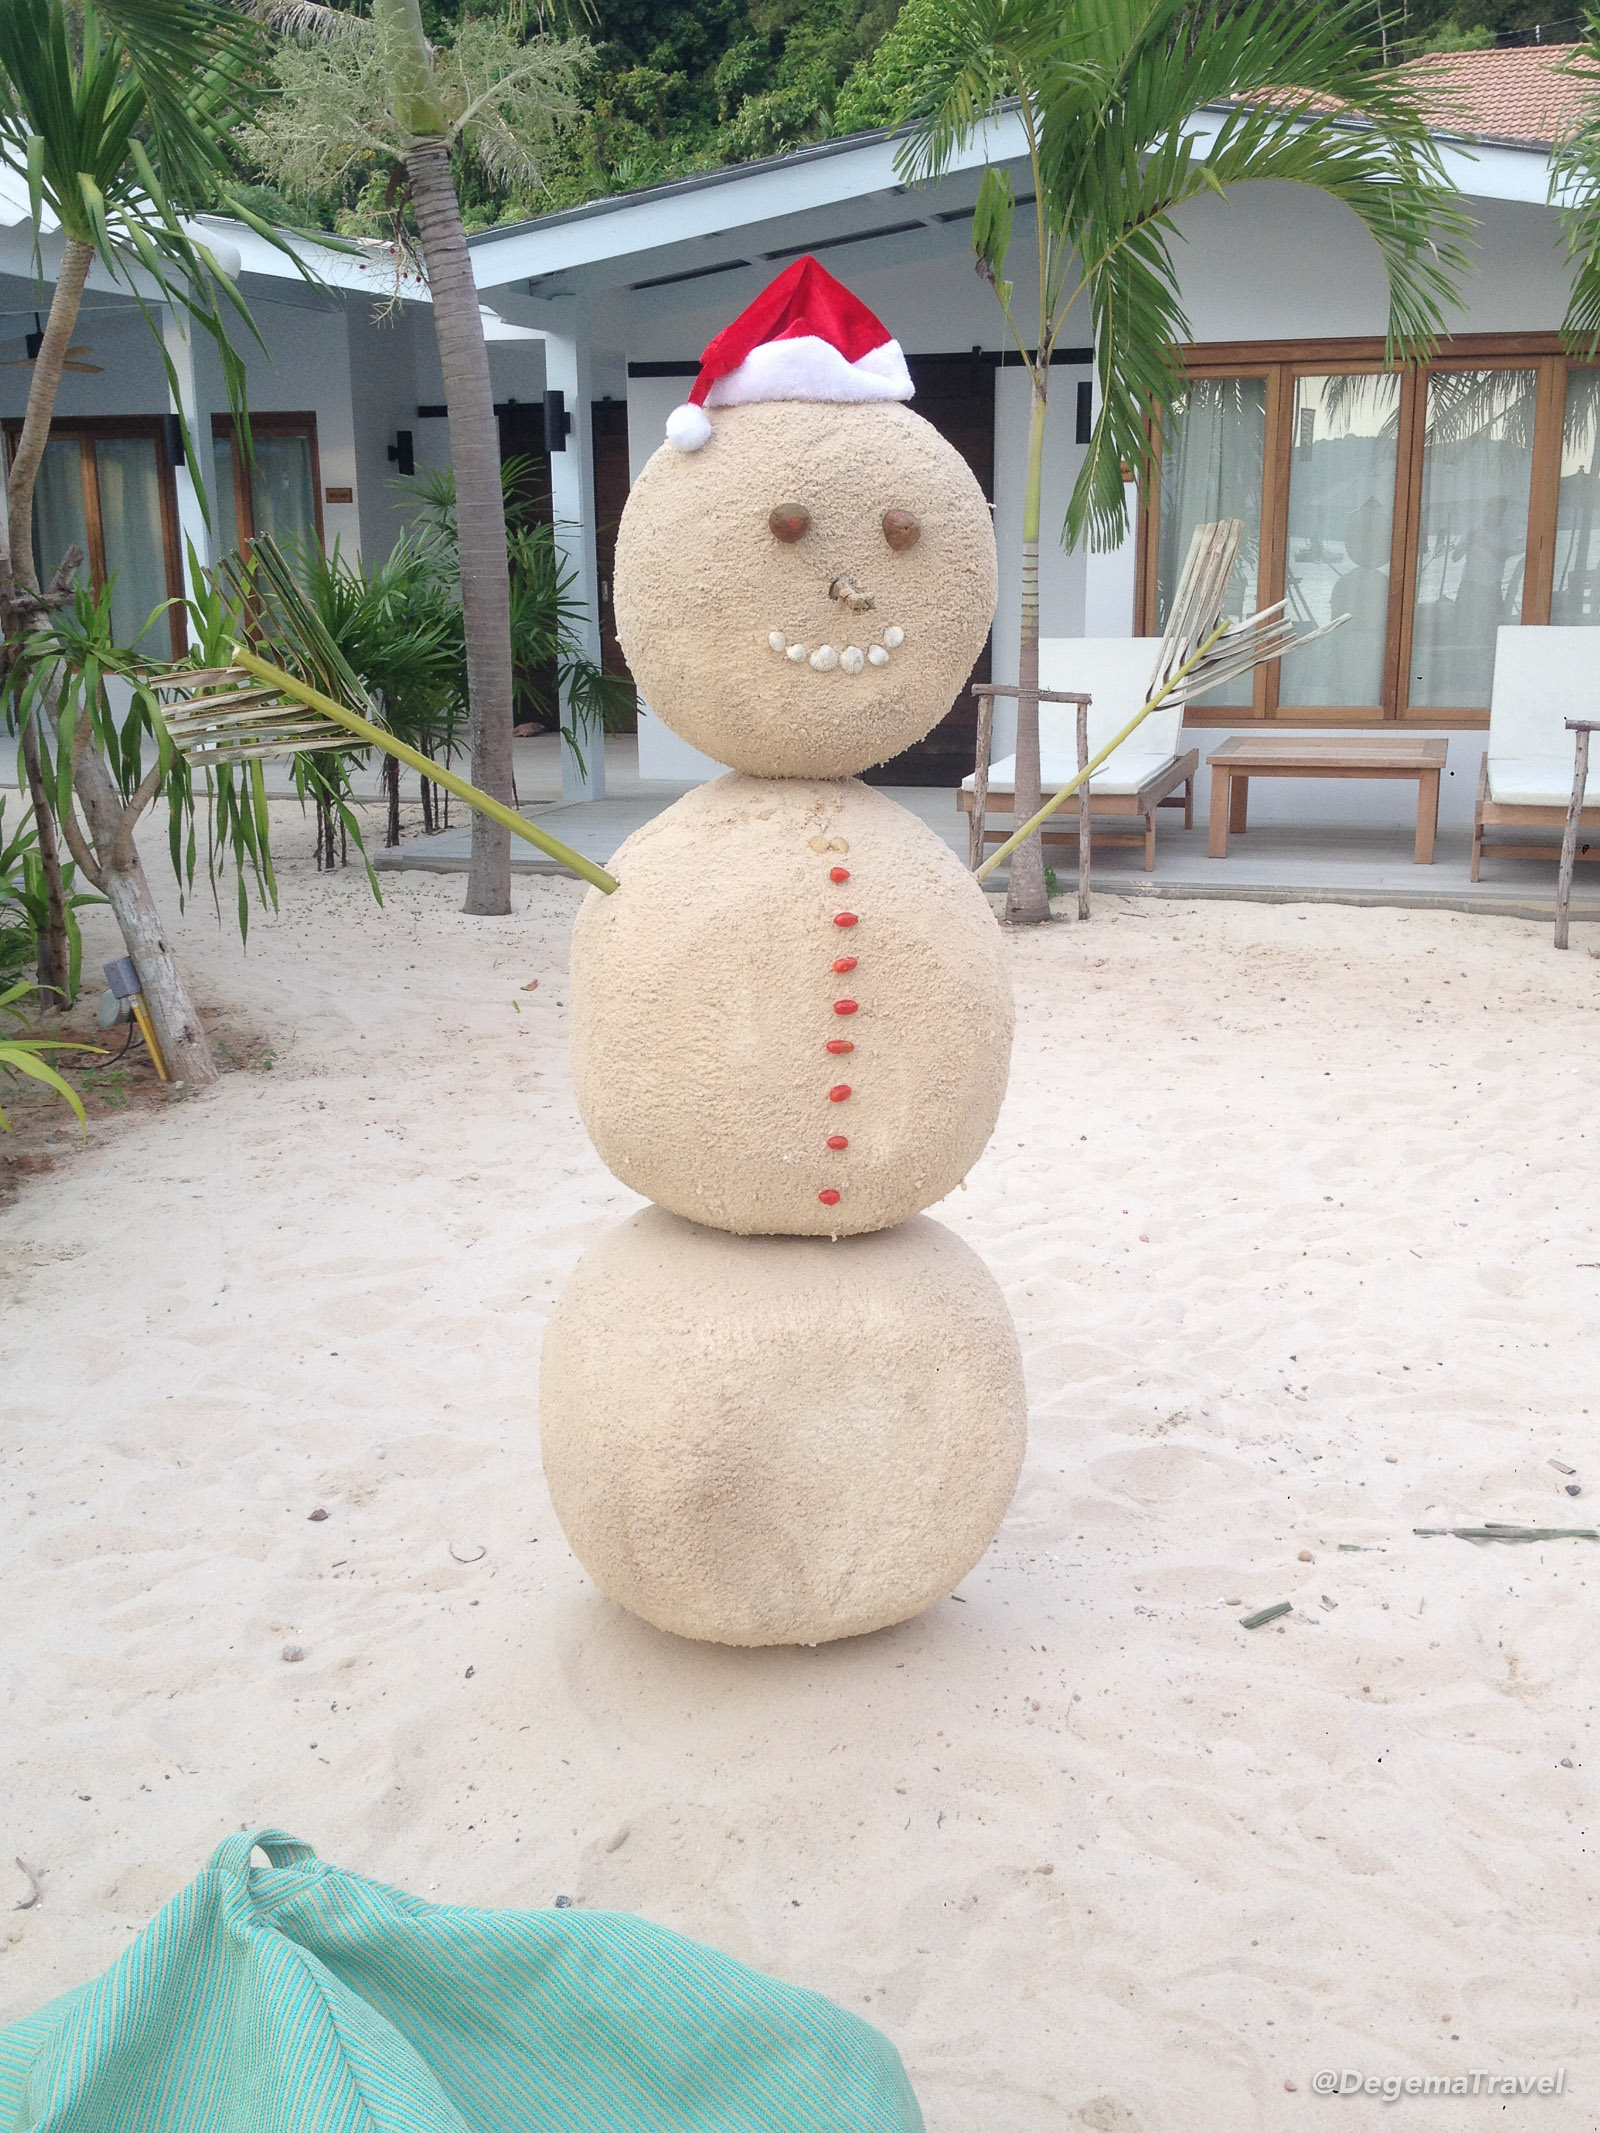 Sand snowman at The Cove Phuket, Thailand